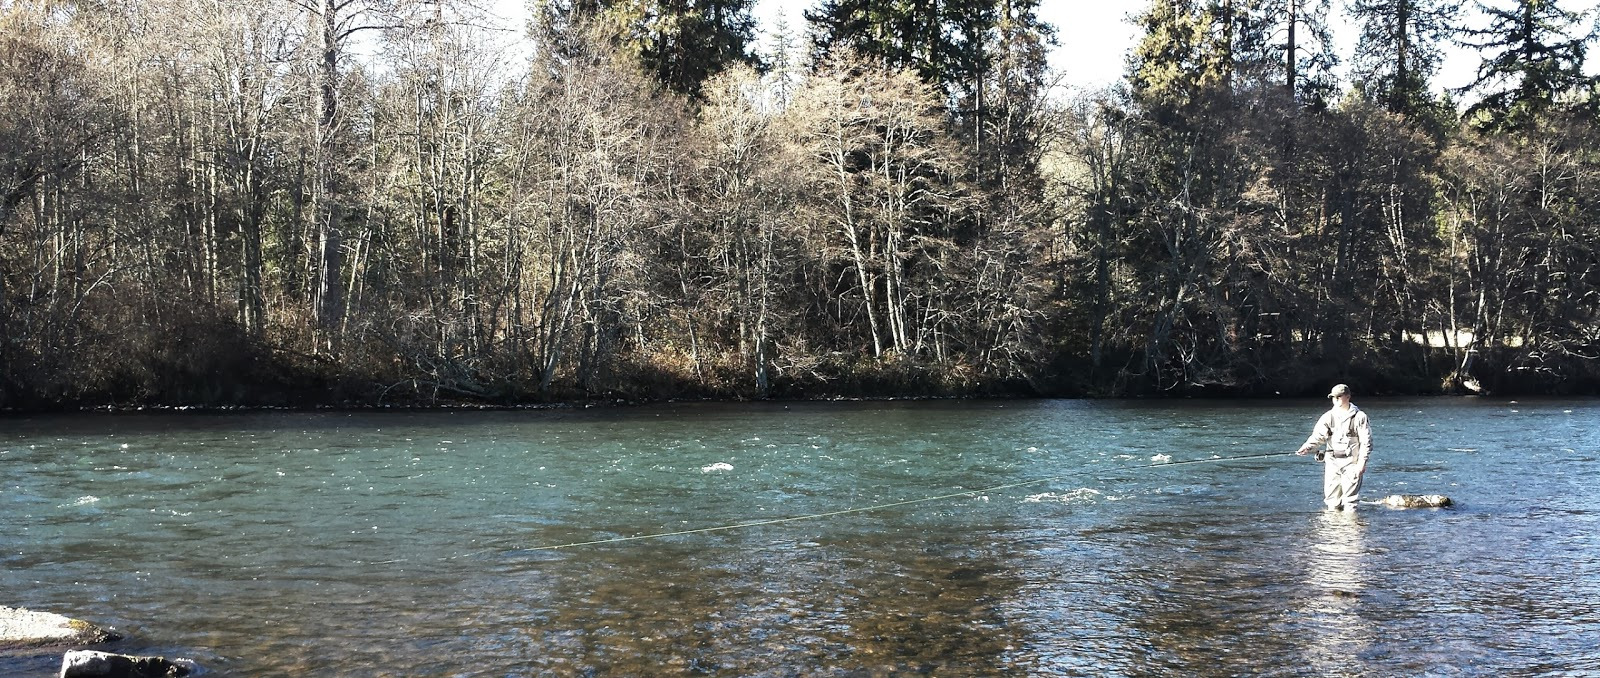 Rogue river and southern oregon fly fishing guide proud papa for Rogue river oregon fishing